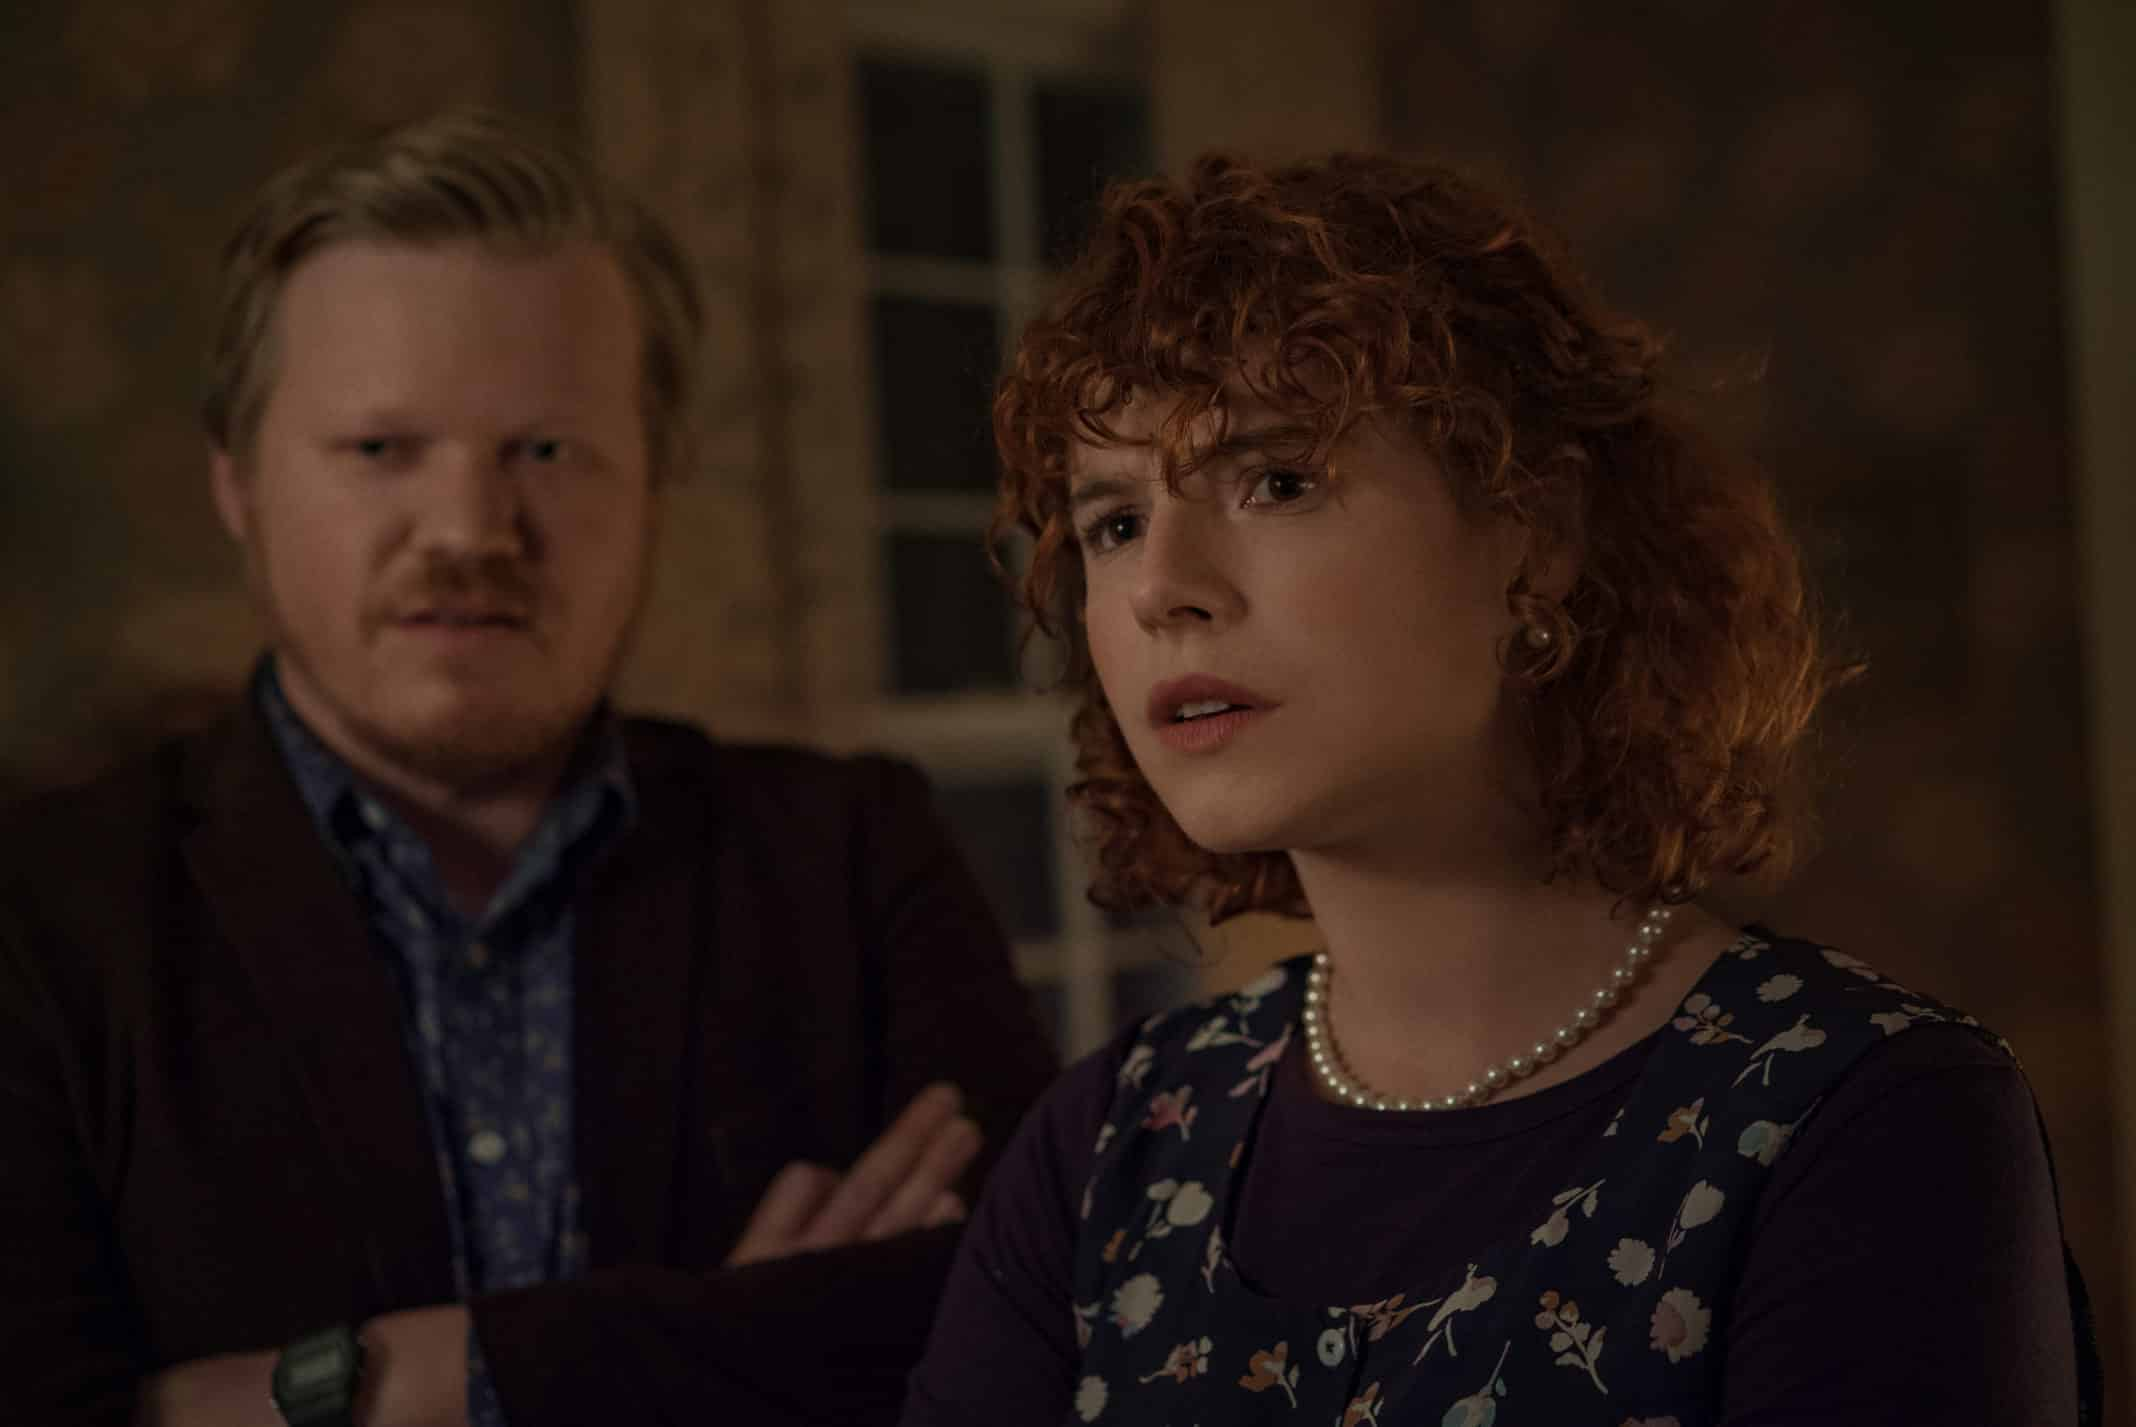 Jake (Jesse Plemons) and Young Woman (Jessie Buckley)